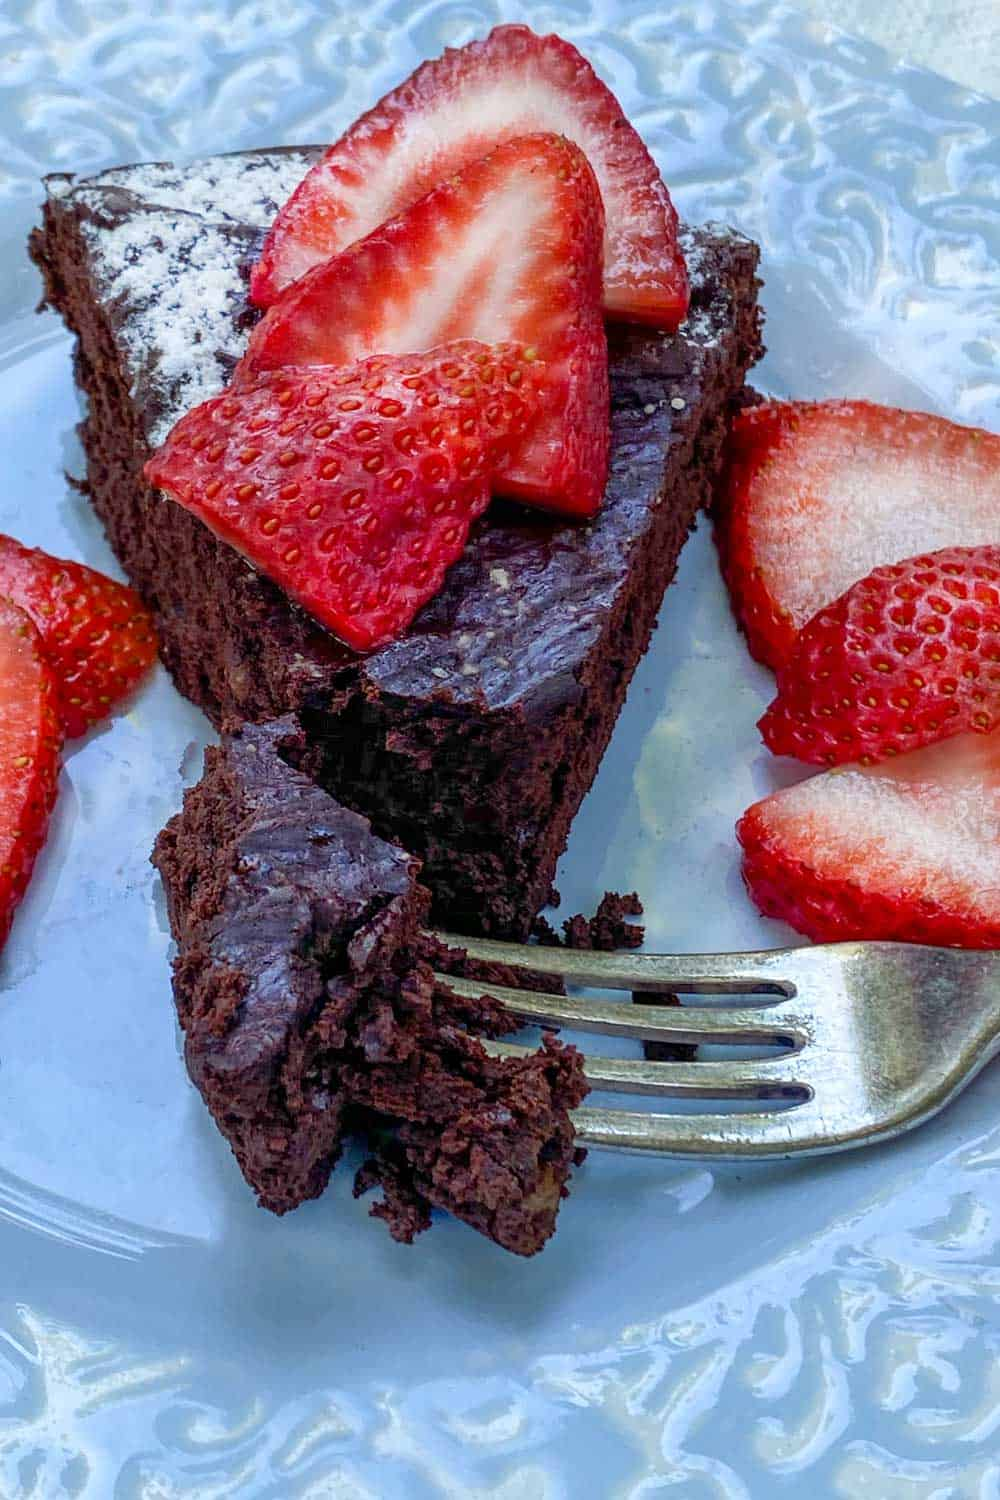 Slice of bittersweet flourless chocolate truffle cake on on a light blue plate with a fork sticking into one bite of cake and some sliced strawberries on the side